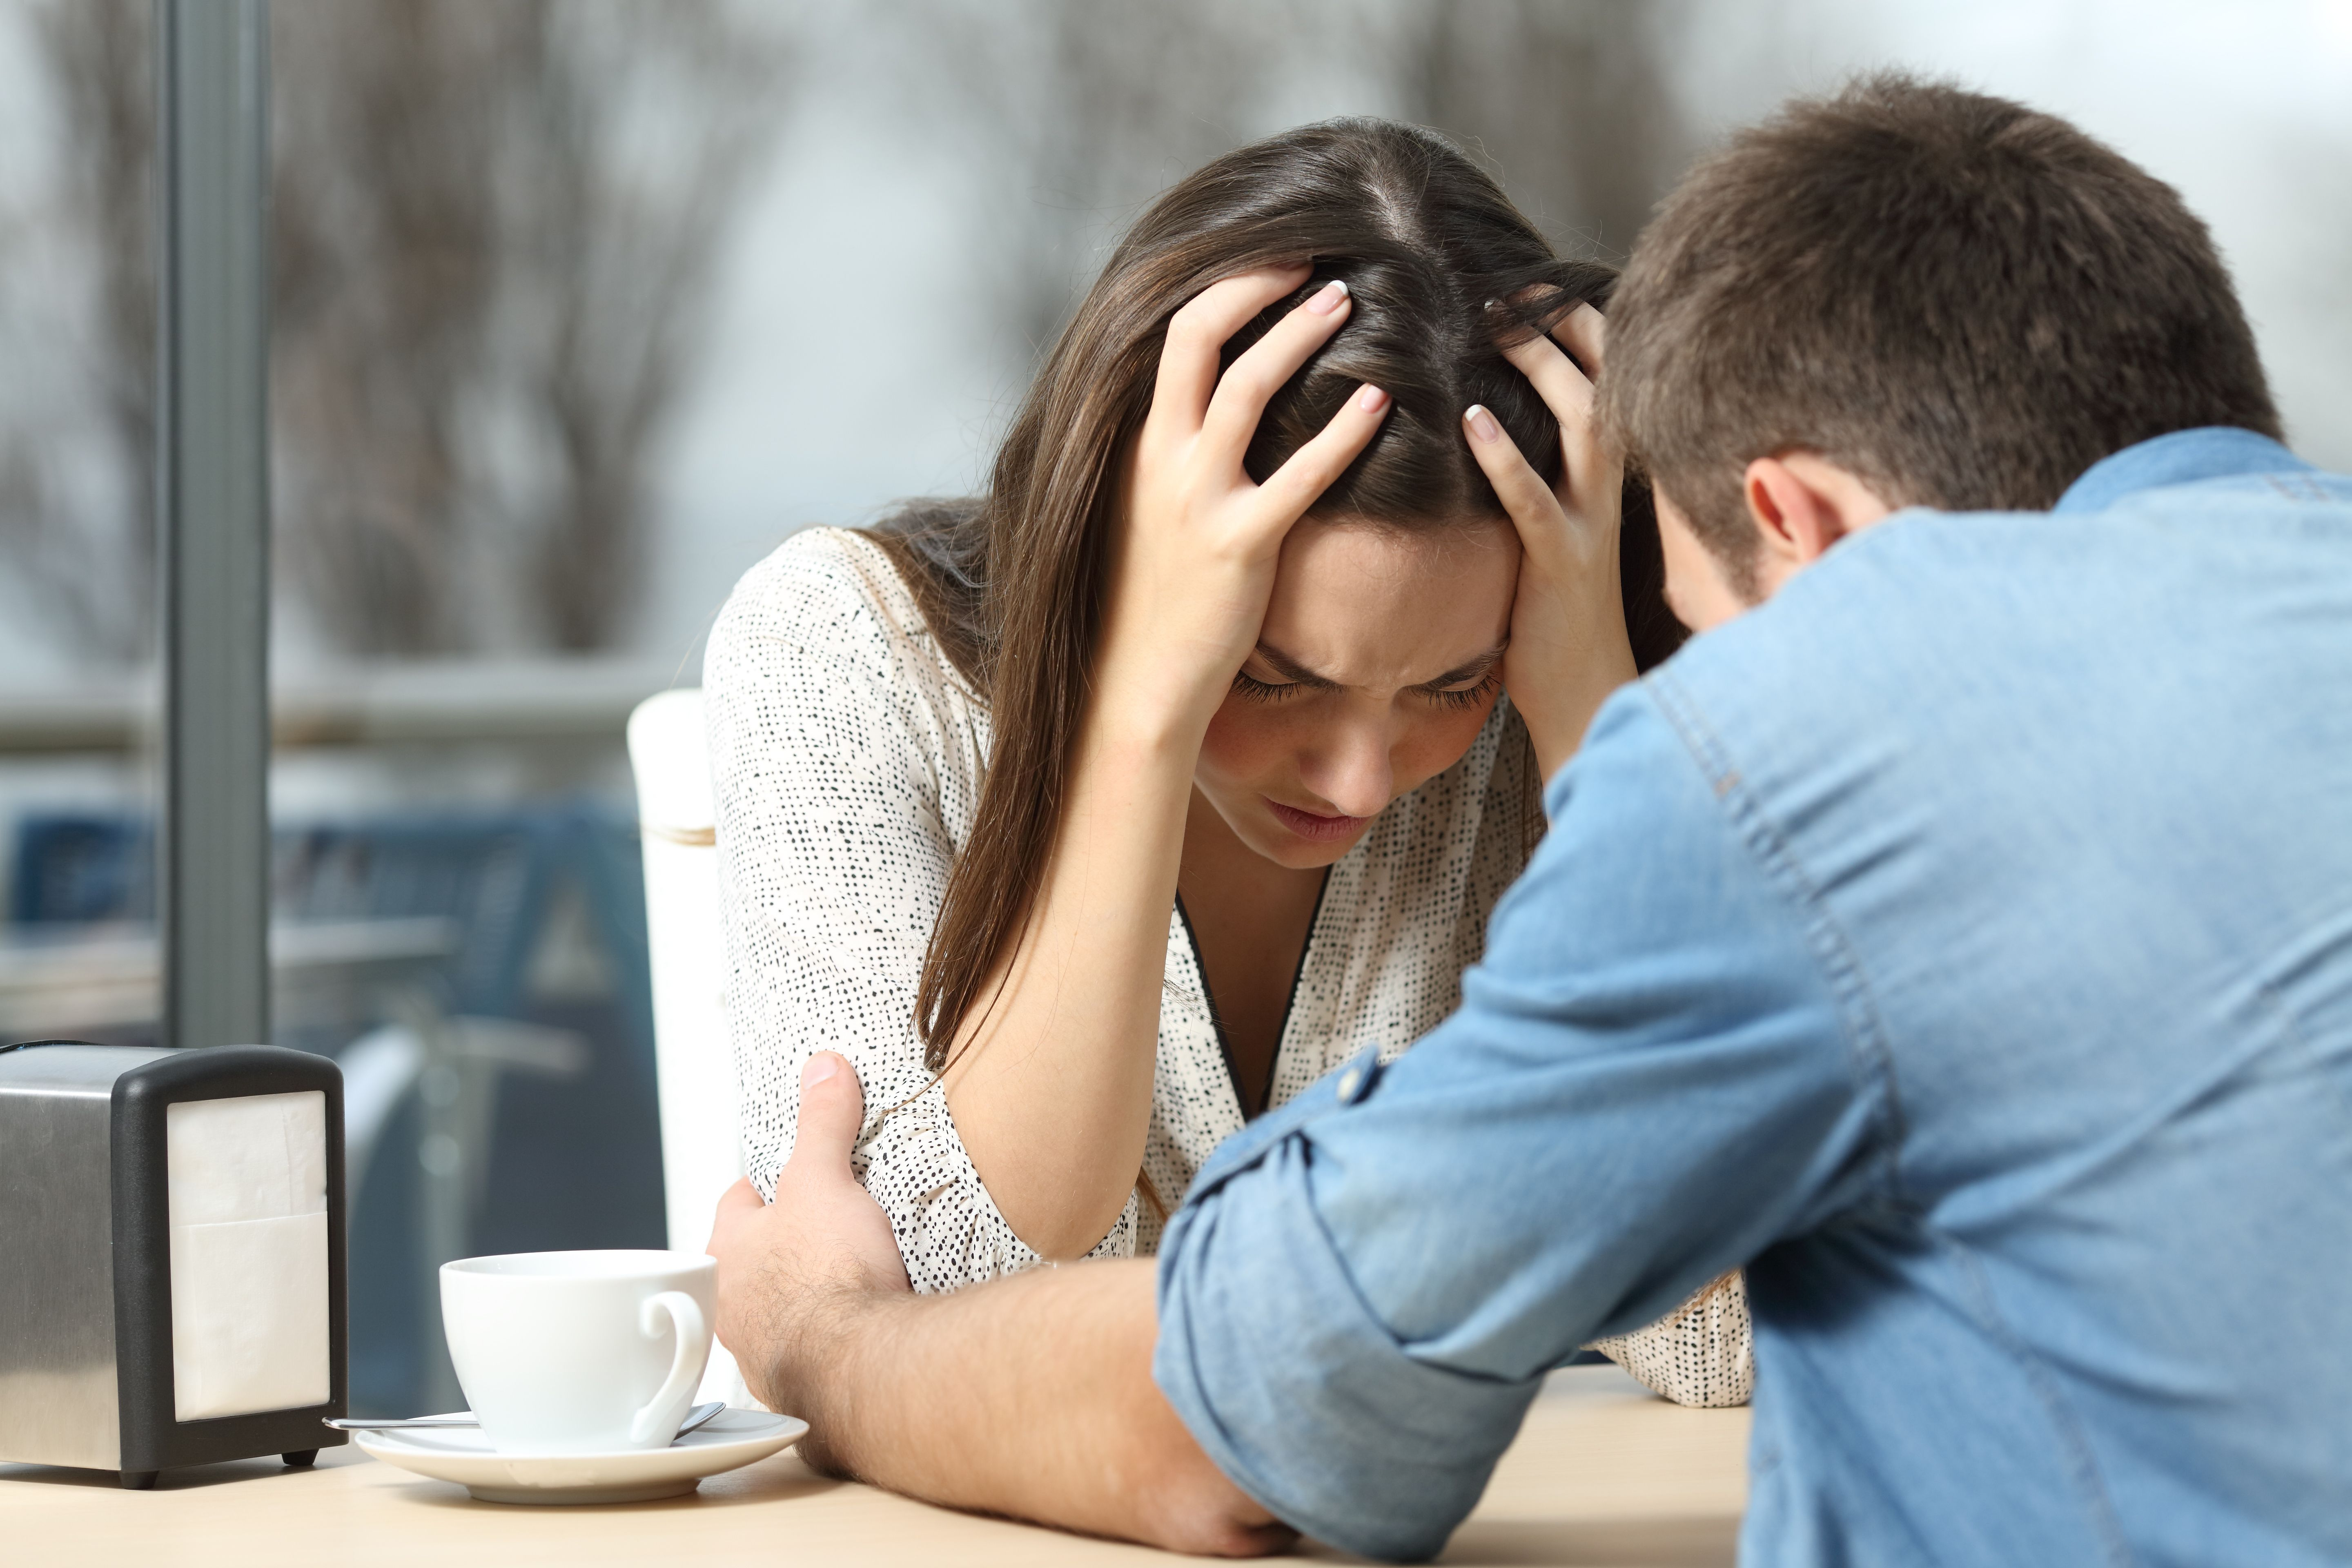 A man and a woman talking after an argument. | Source: Shutterstock